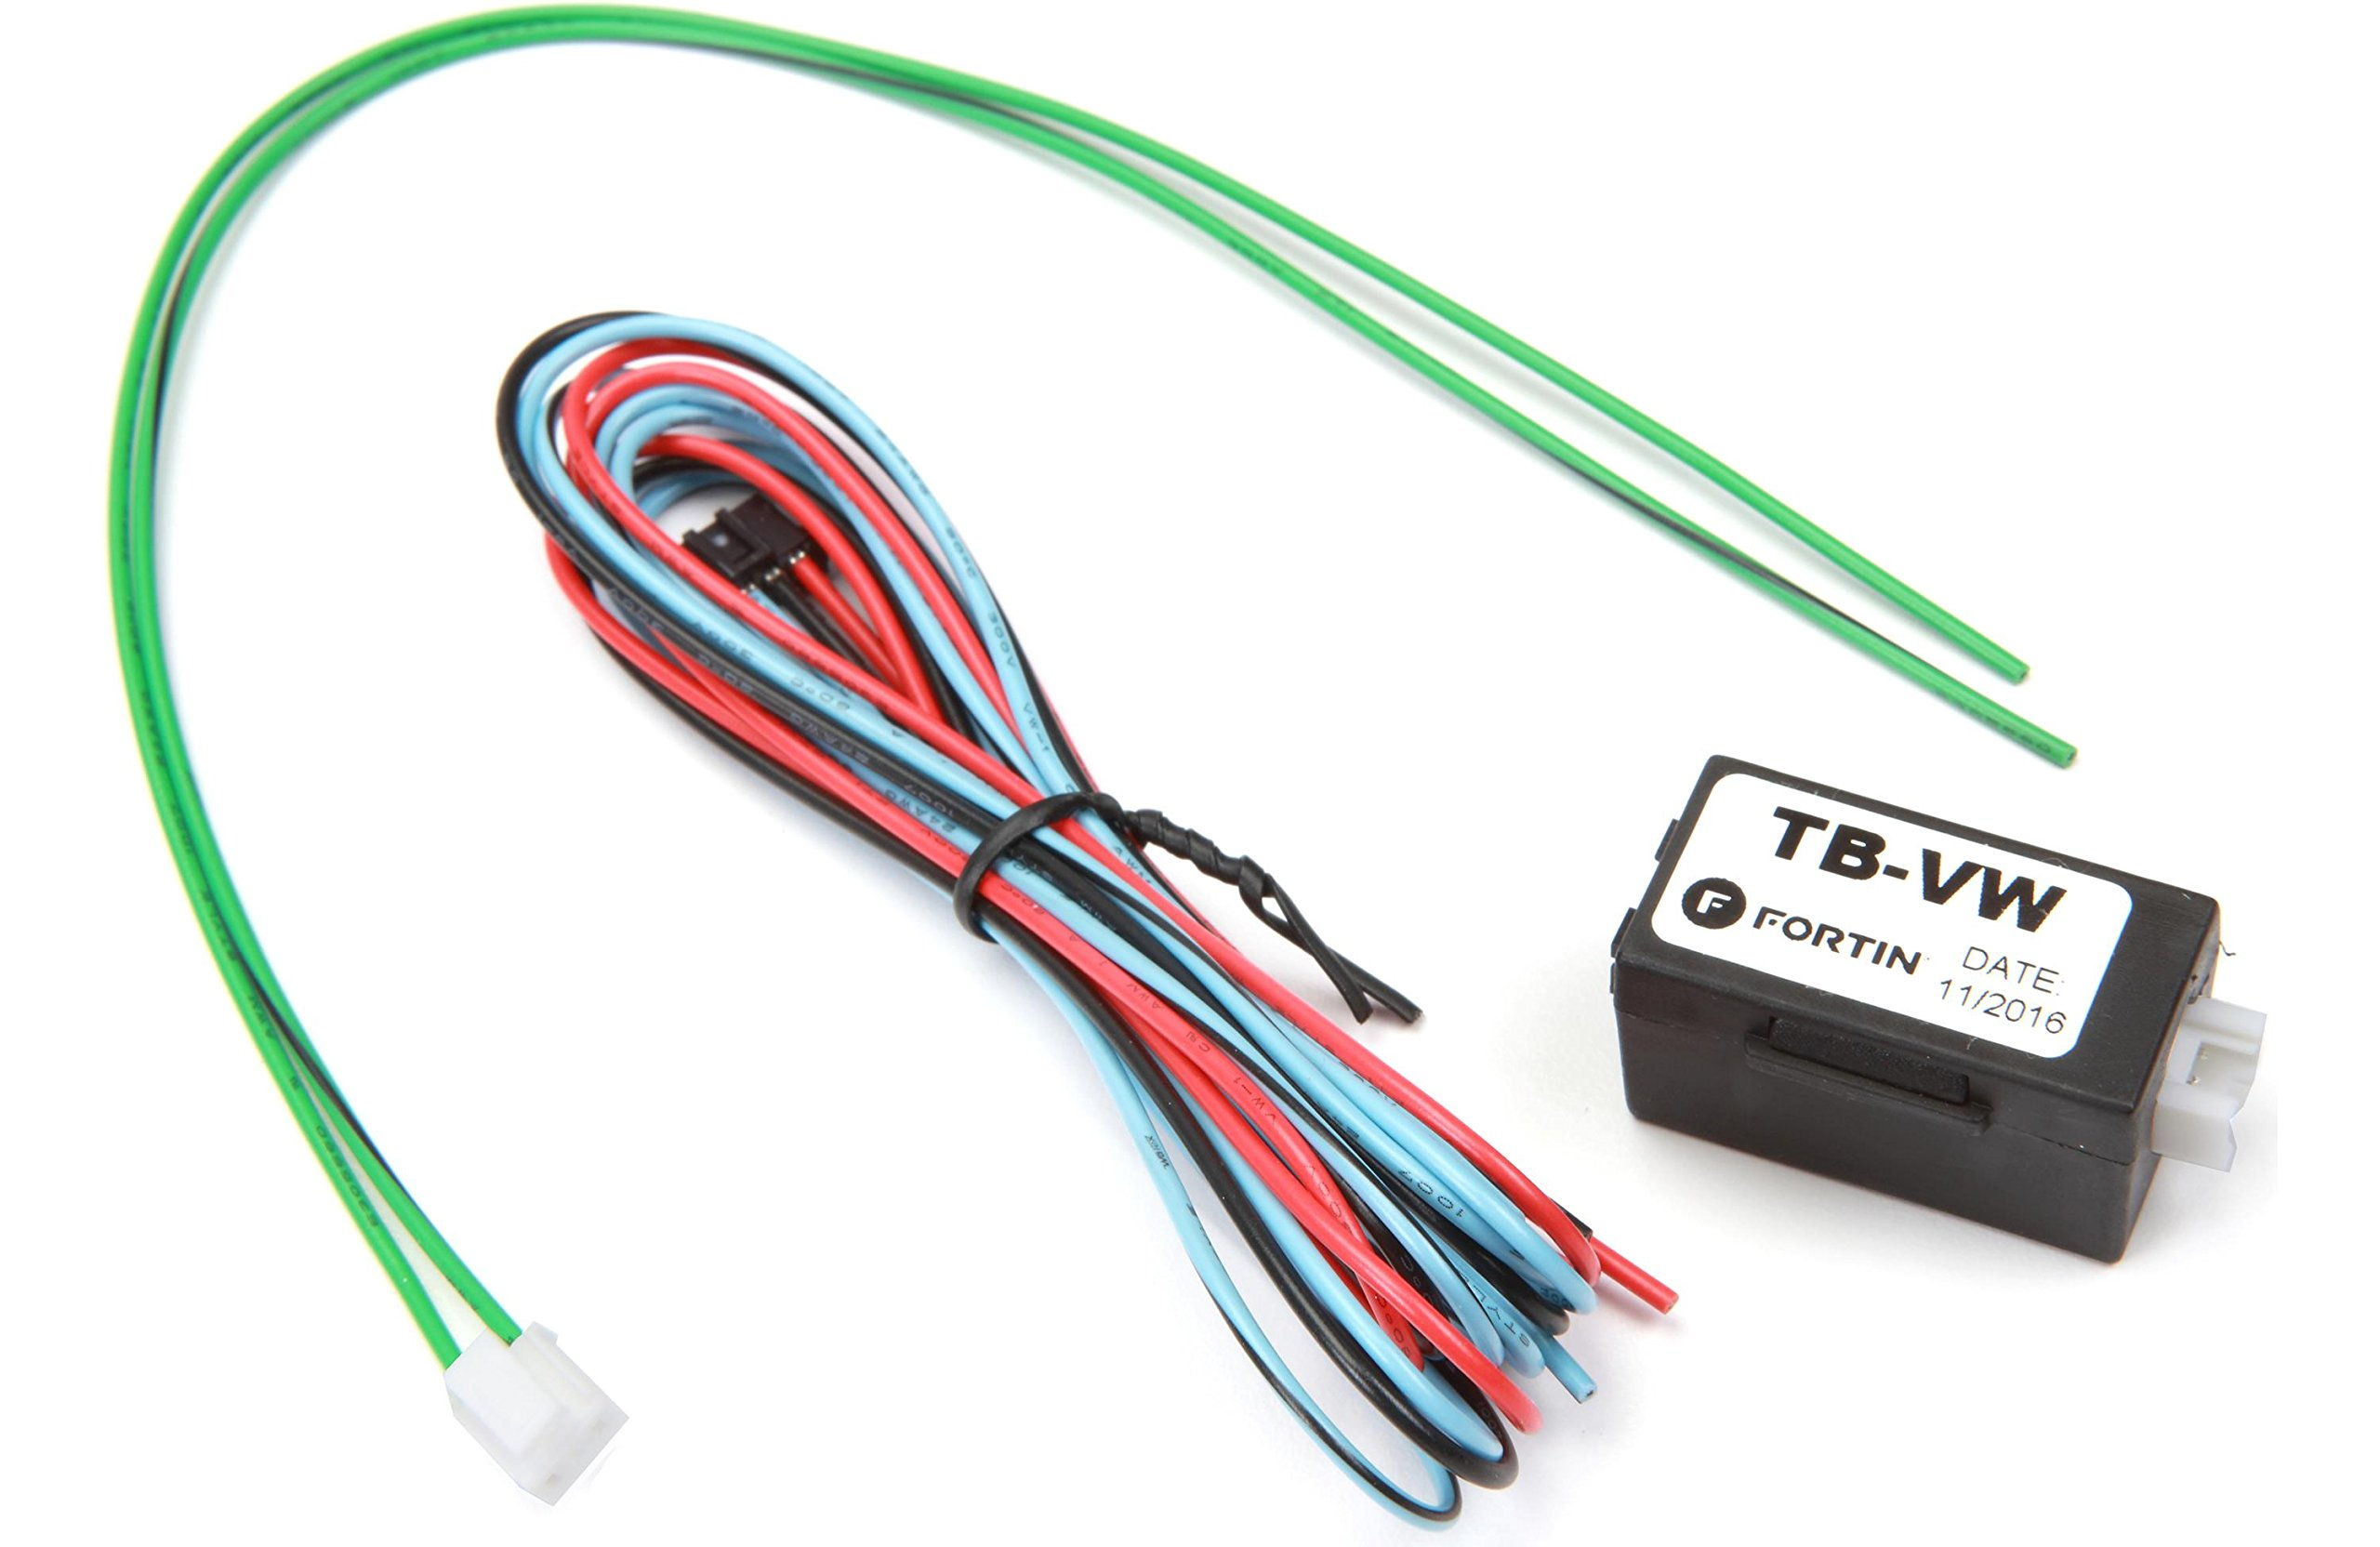 Fortin TB-VW Transponder Bypass Interface for EVO-ALL or EVO-ONE ON select 2011-up VW and Audi vehicles